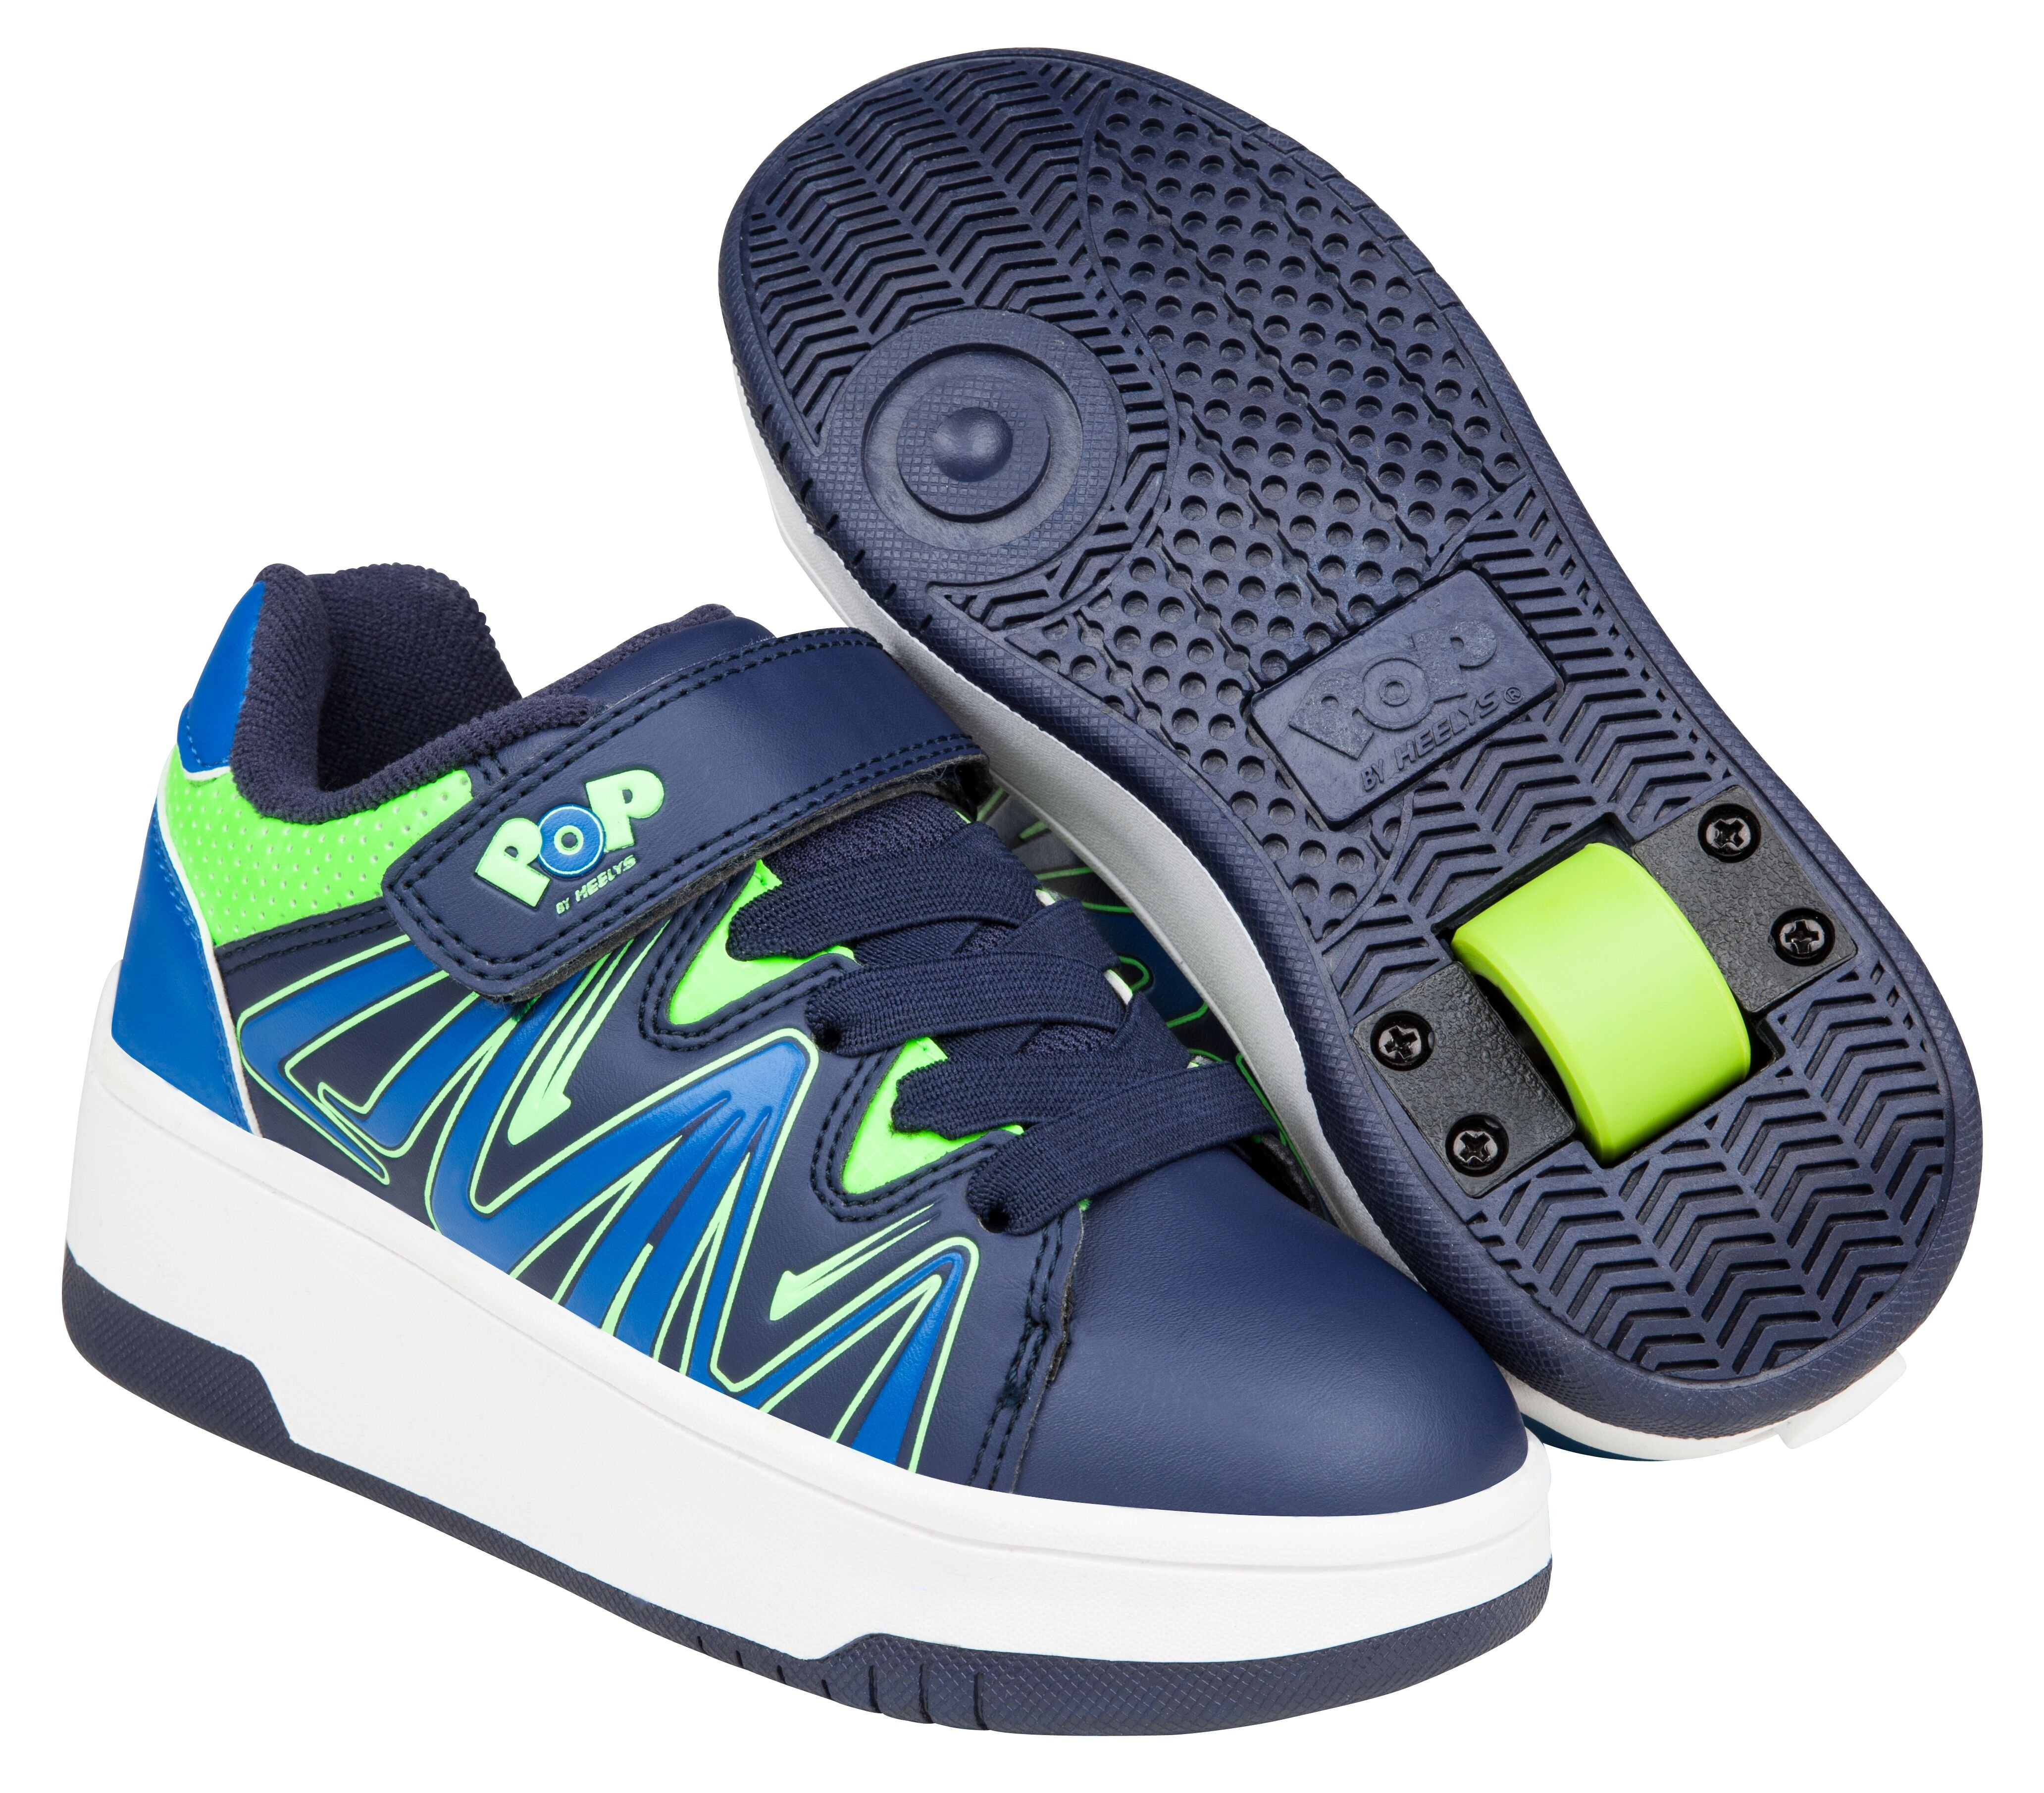 Heelys - Burst - Navy/Royal/Lime - Size 30 (POP-B1W-0007)